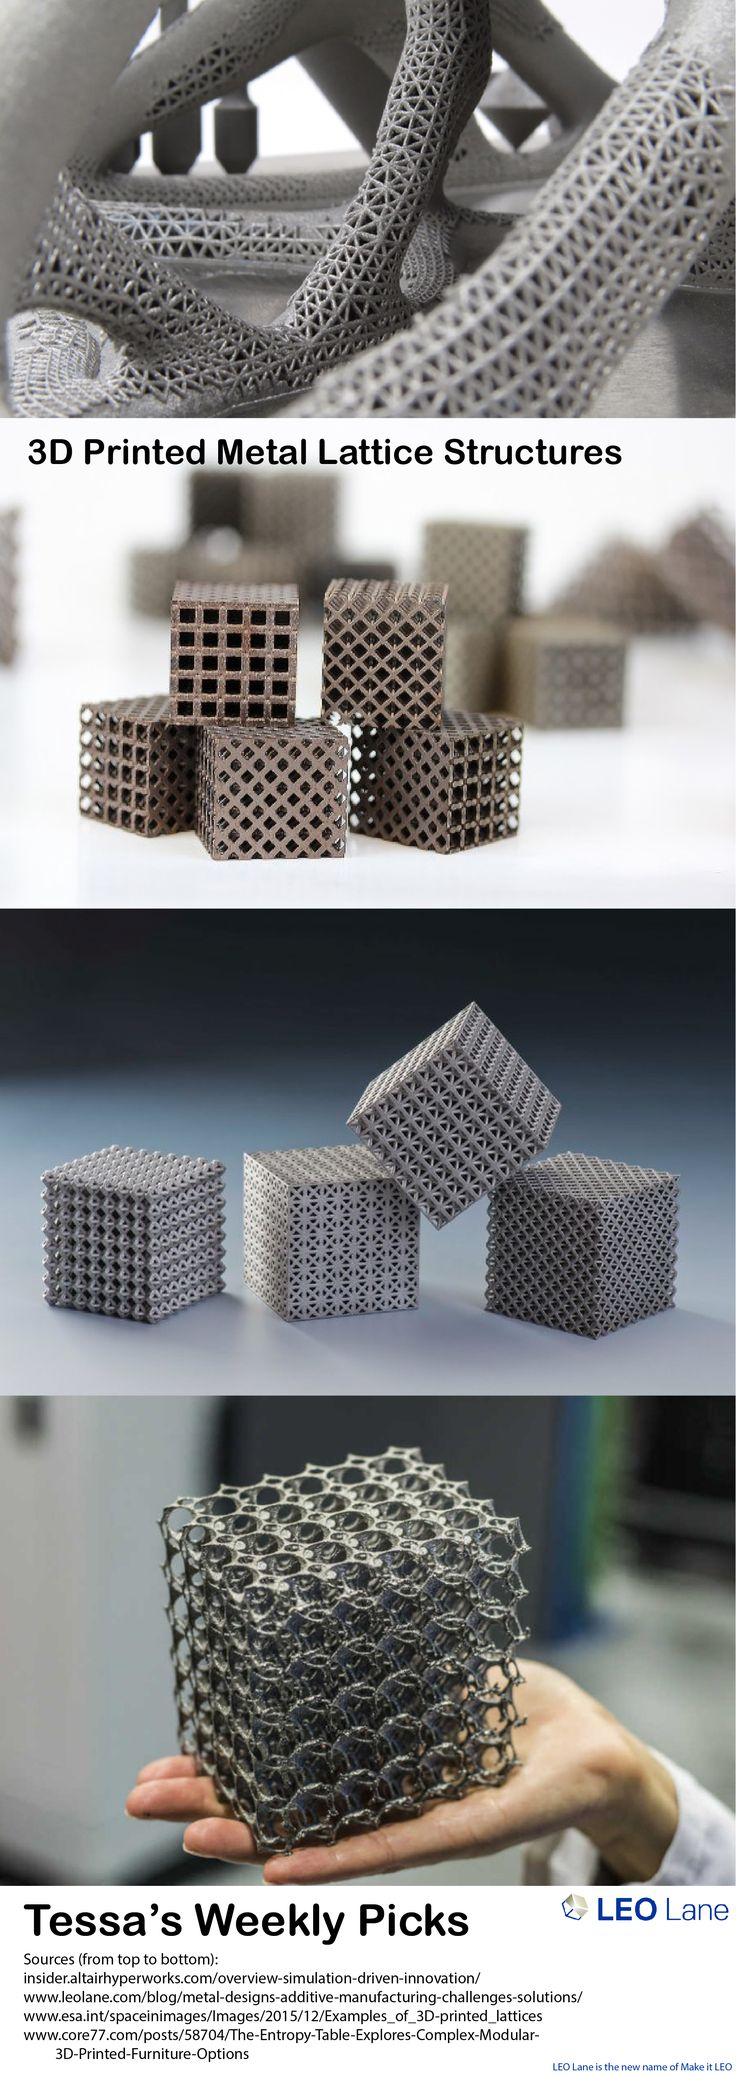 Tessa's Weekly Picks – 3D Printed Metal Lattice Structures